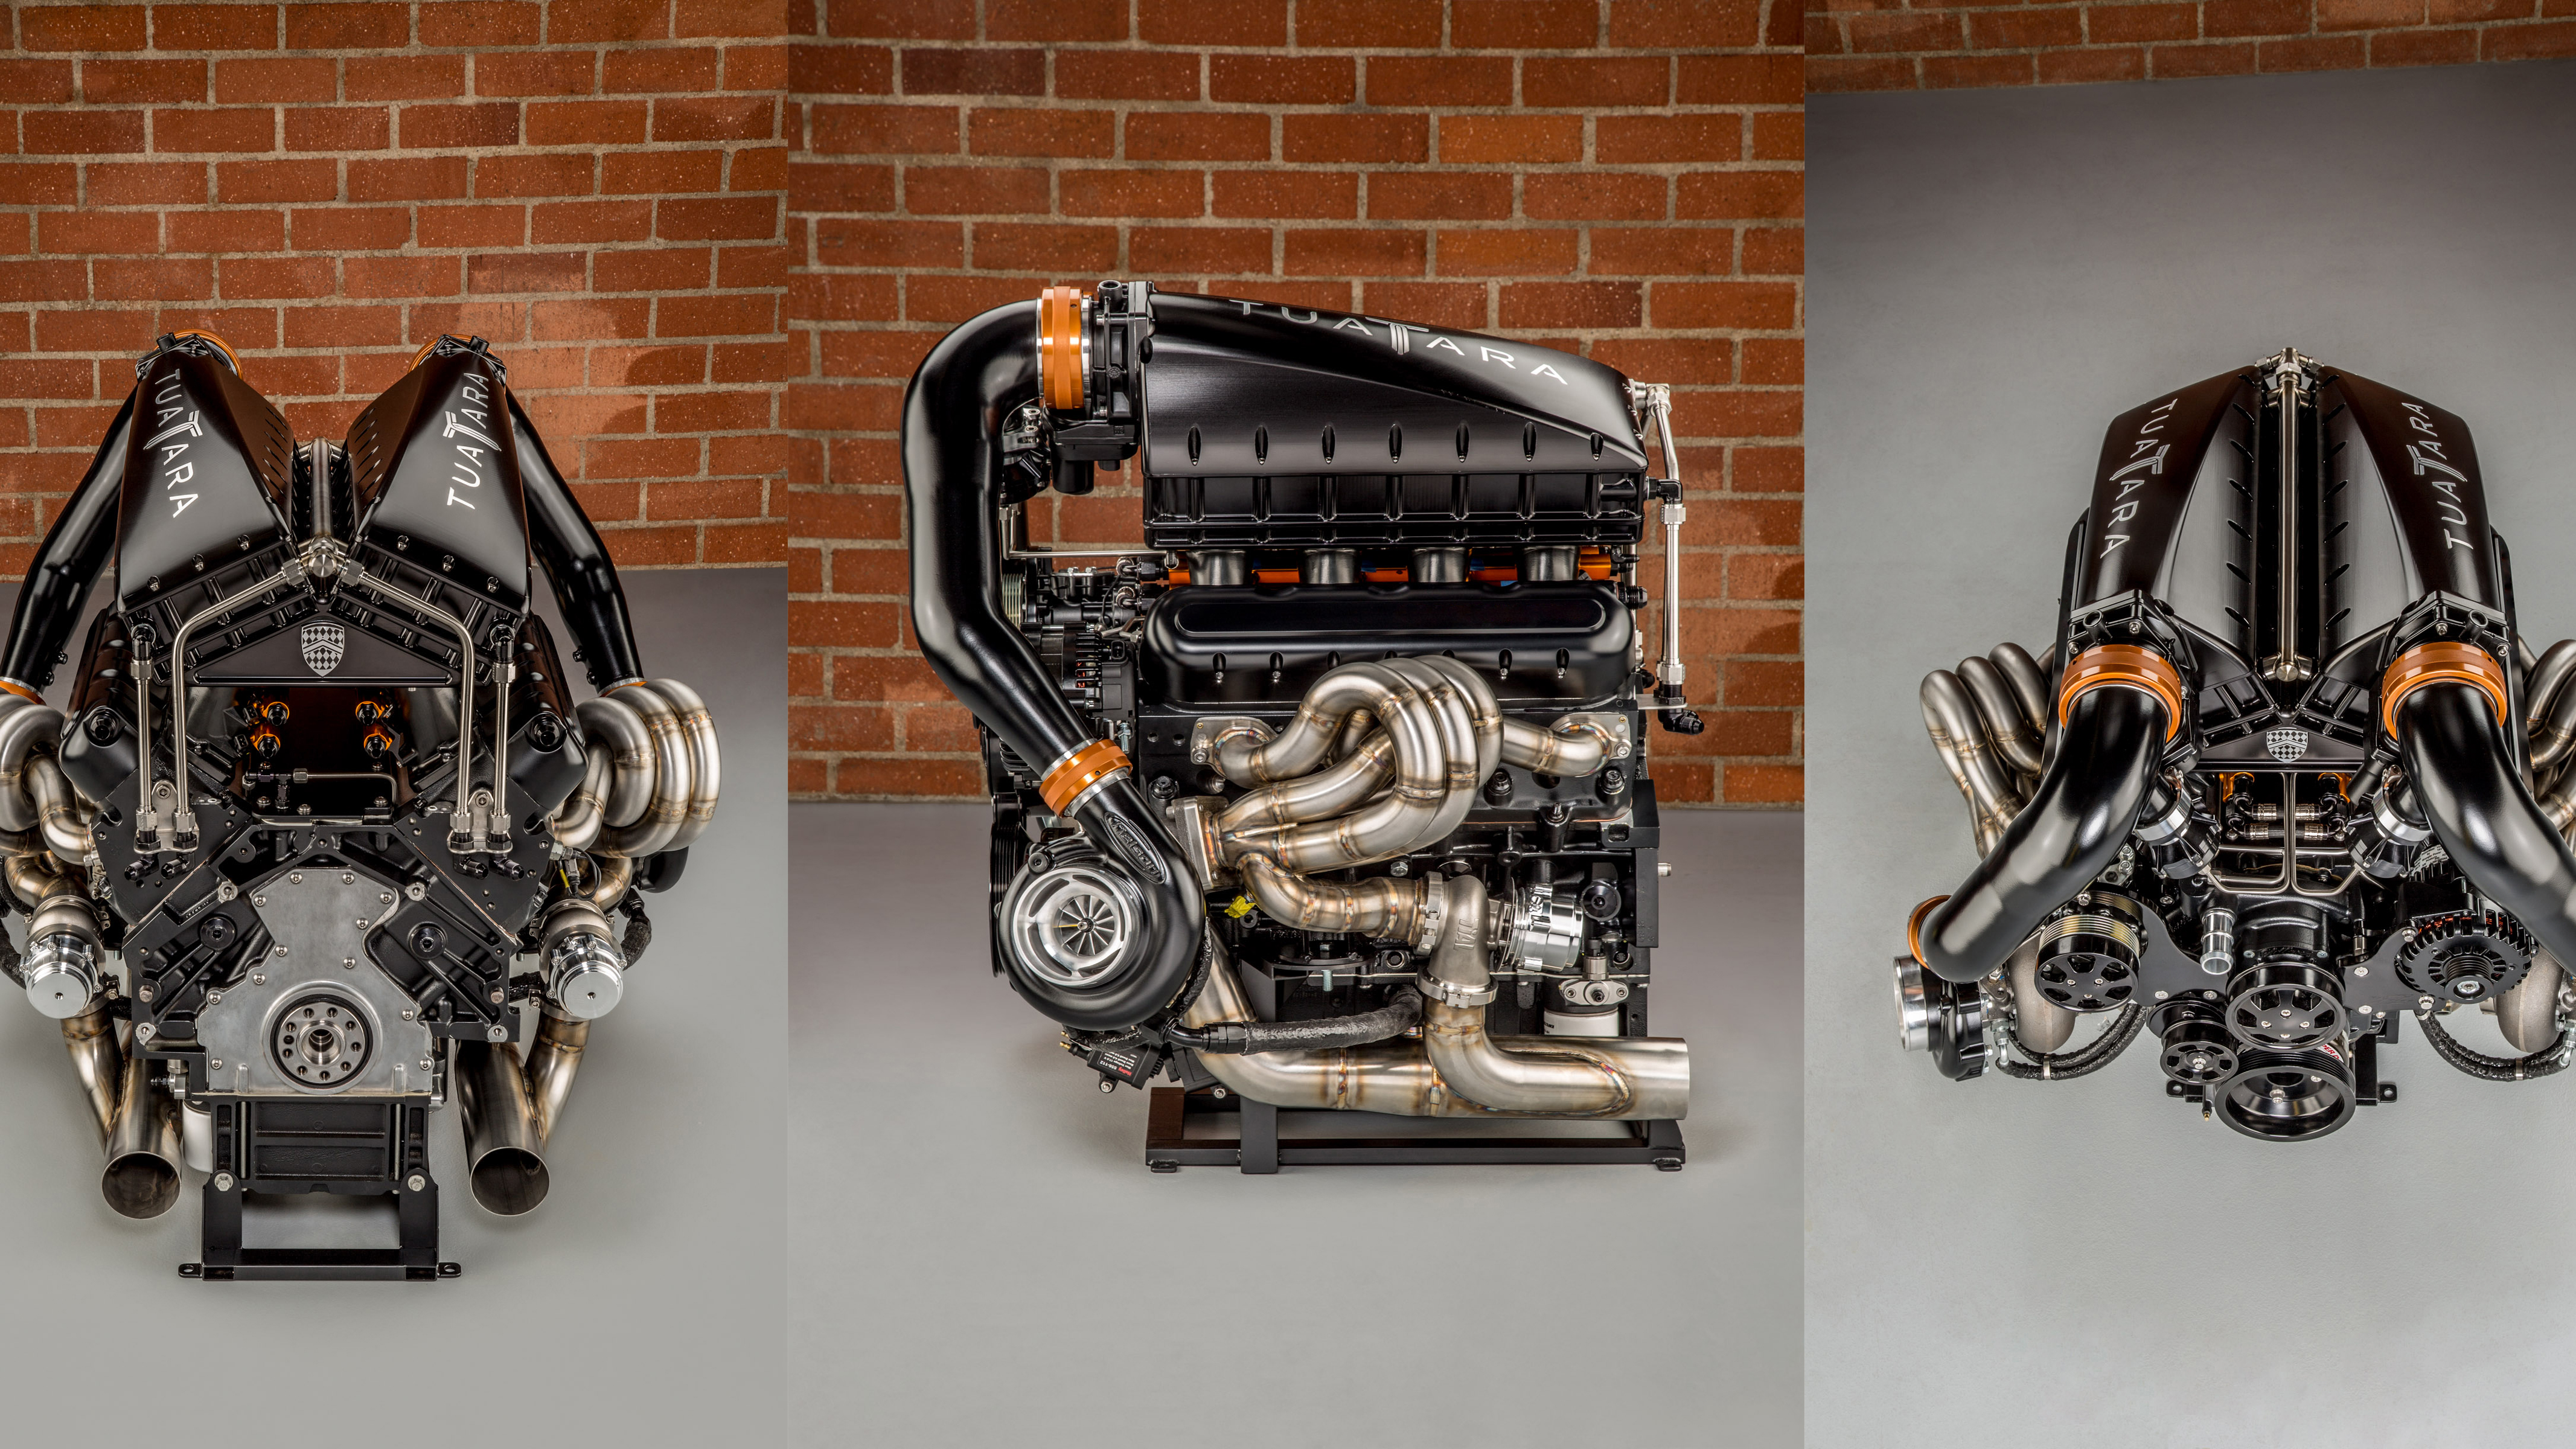 The Ssc Tuatara S Twin Turbo V 8 Is A Work Of Art Top Speed